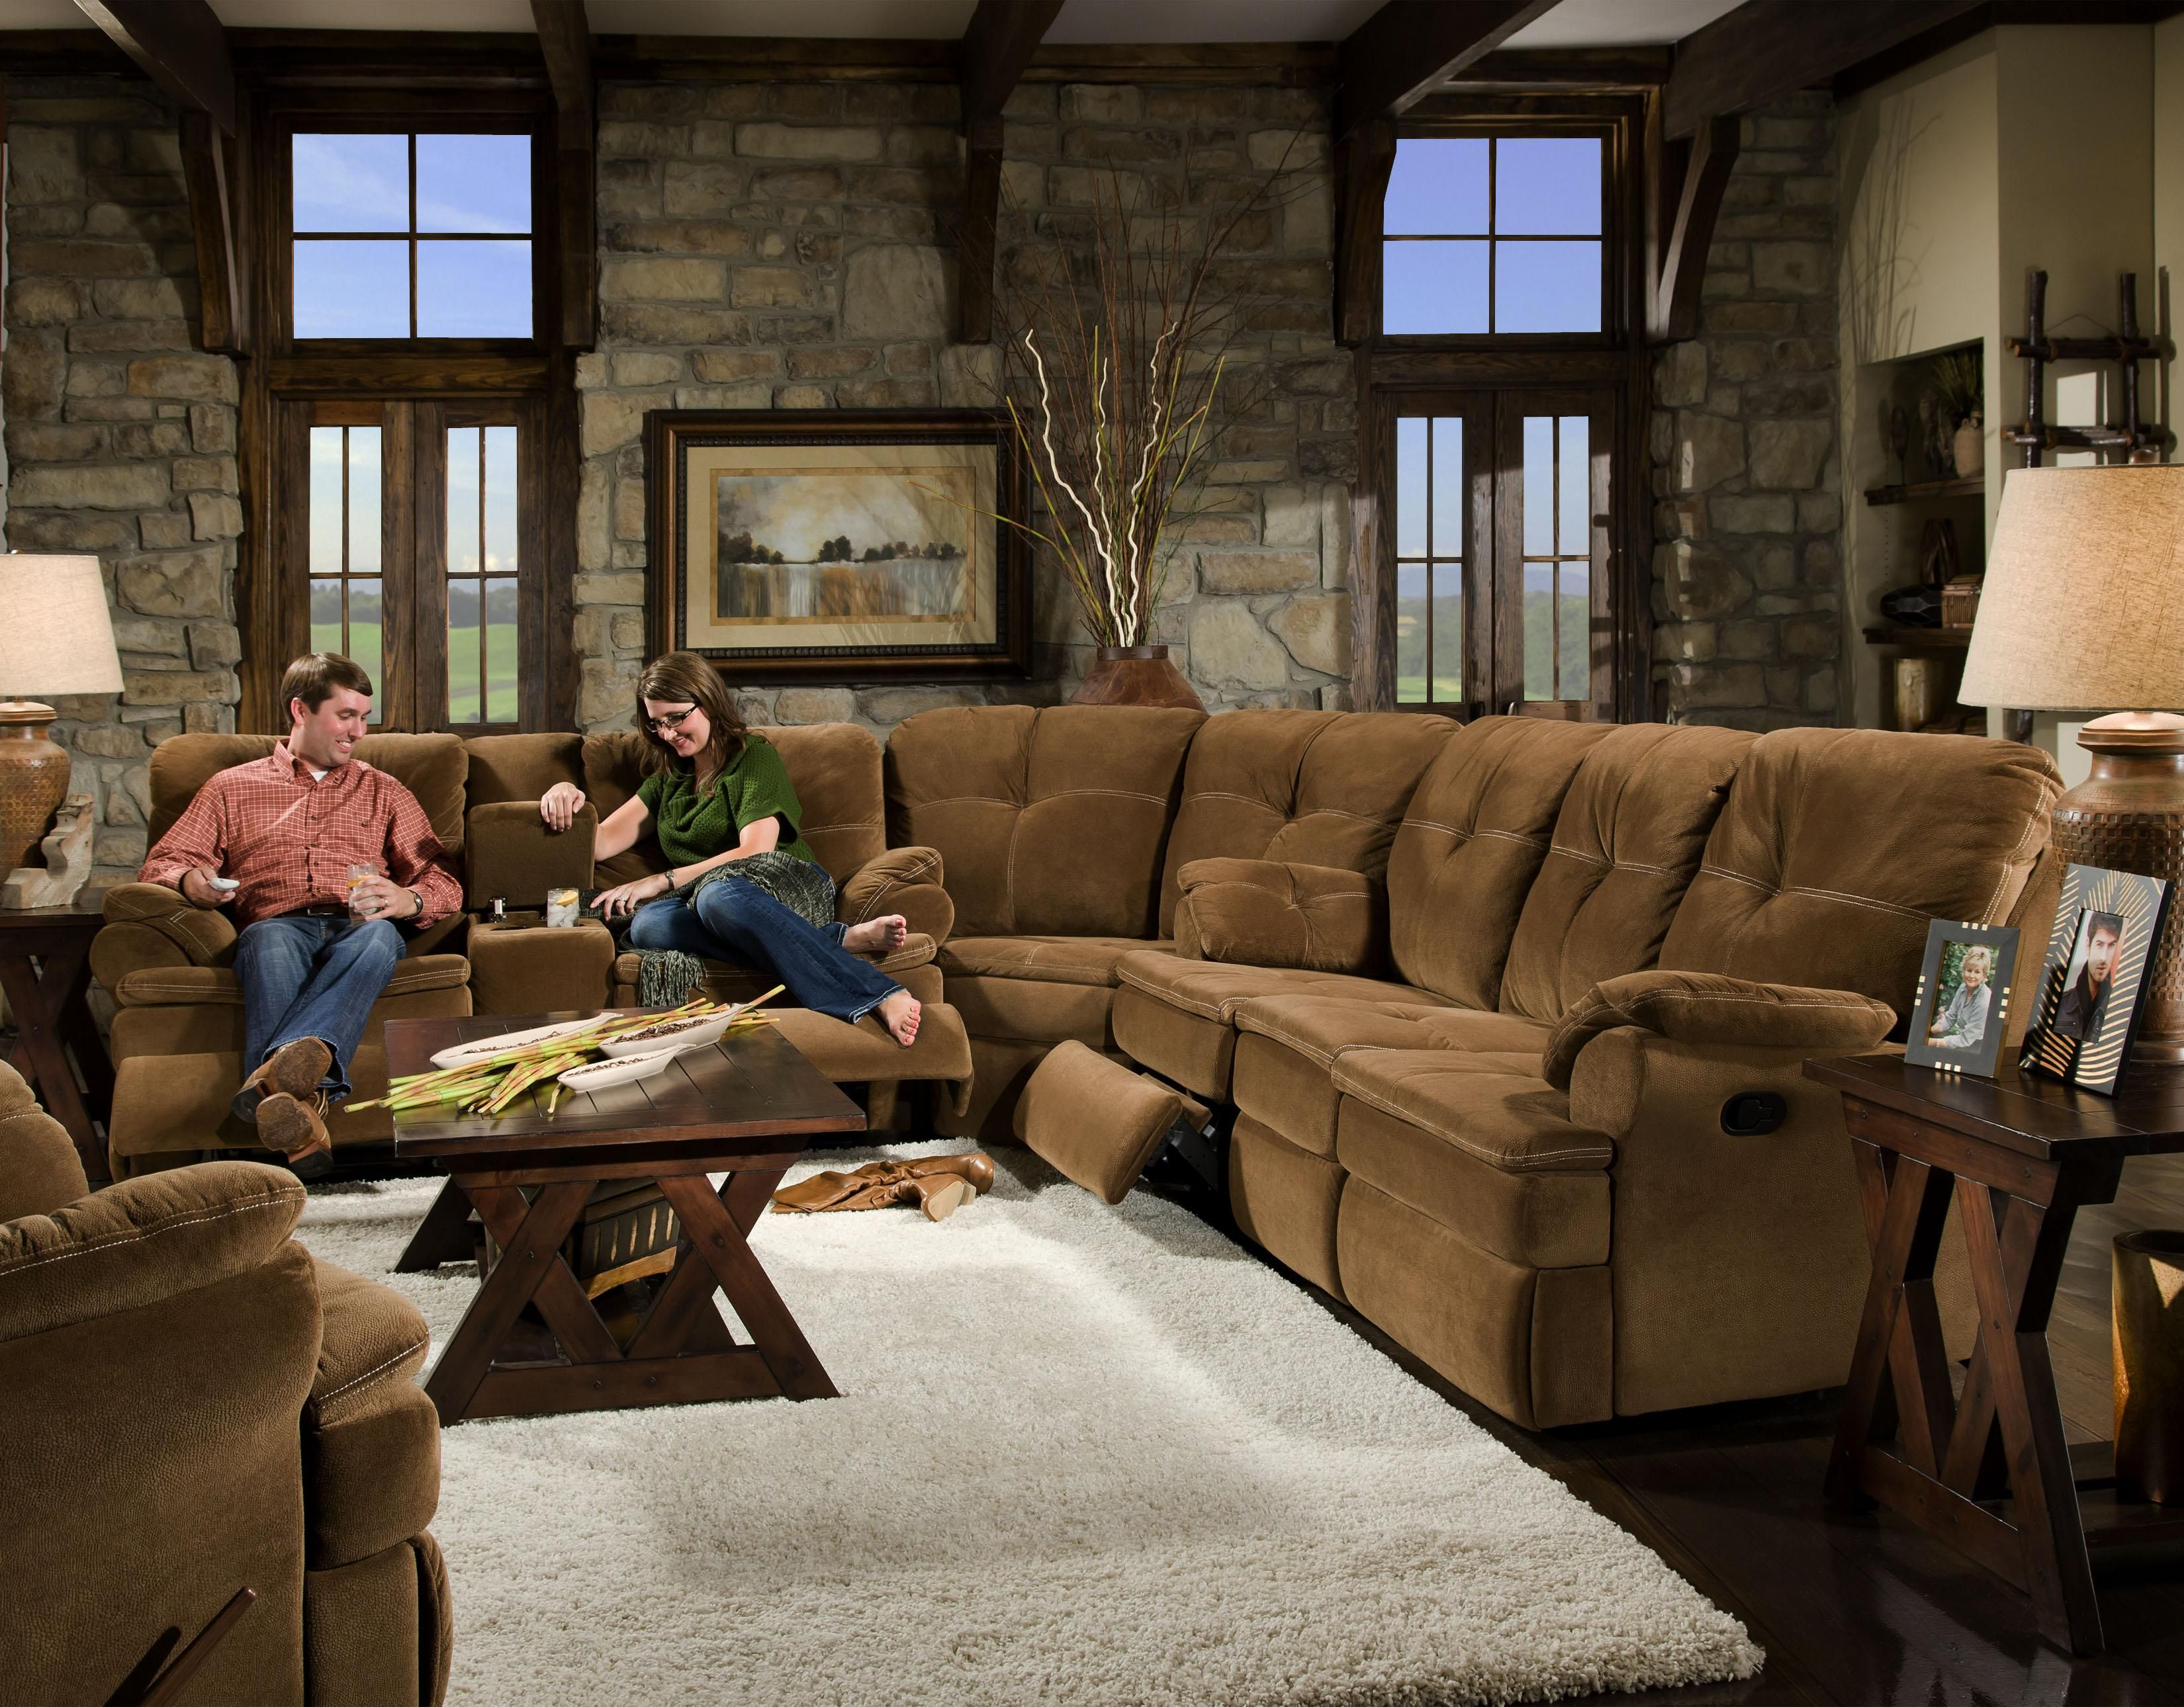 909 Night Party 3 Piece Sectional By Corinthian   Great American Home Store    Sofa Sectional